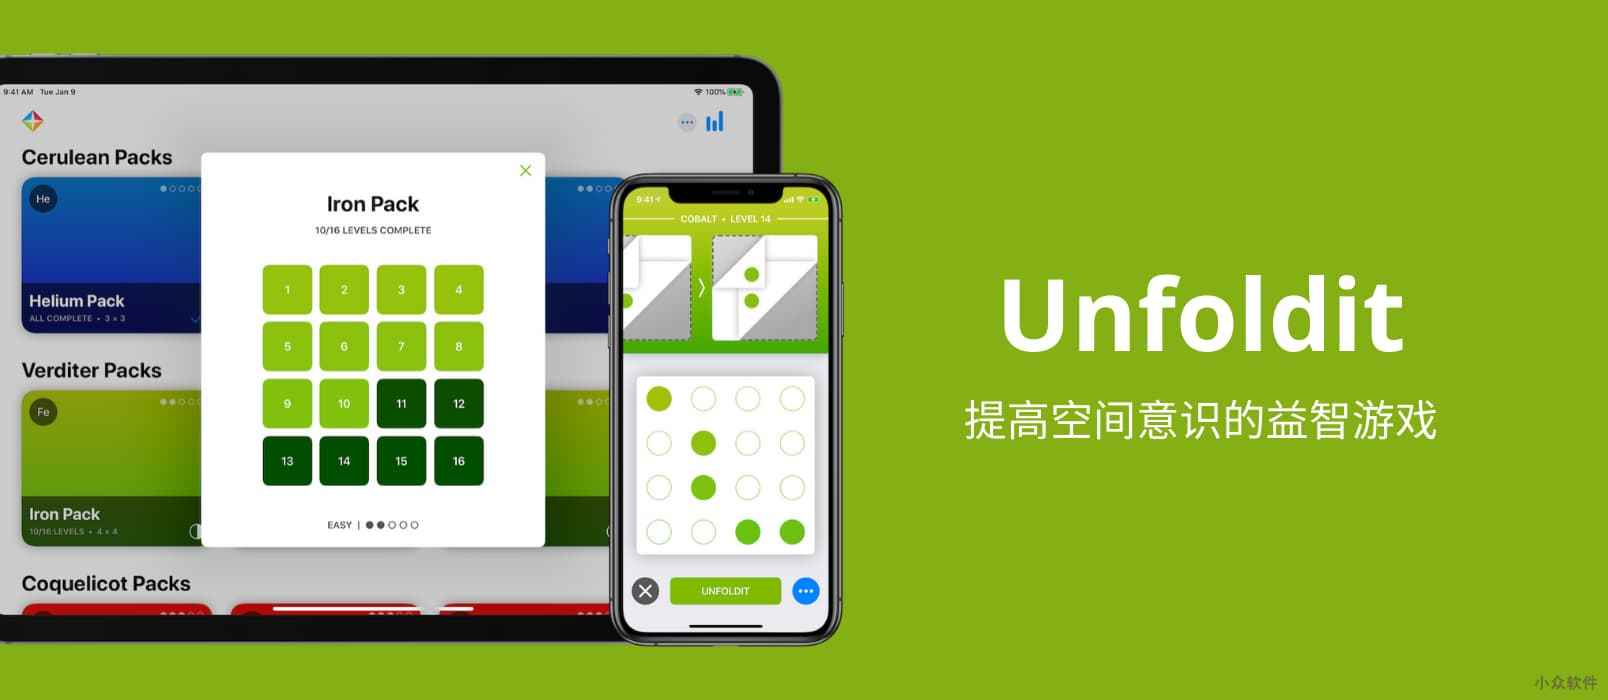 Unfoldit - 用来提高你的空间意识的益智游戏[iPhone/Android] 1